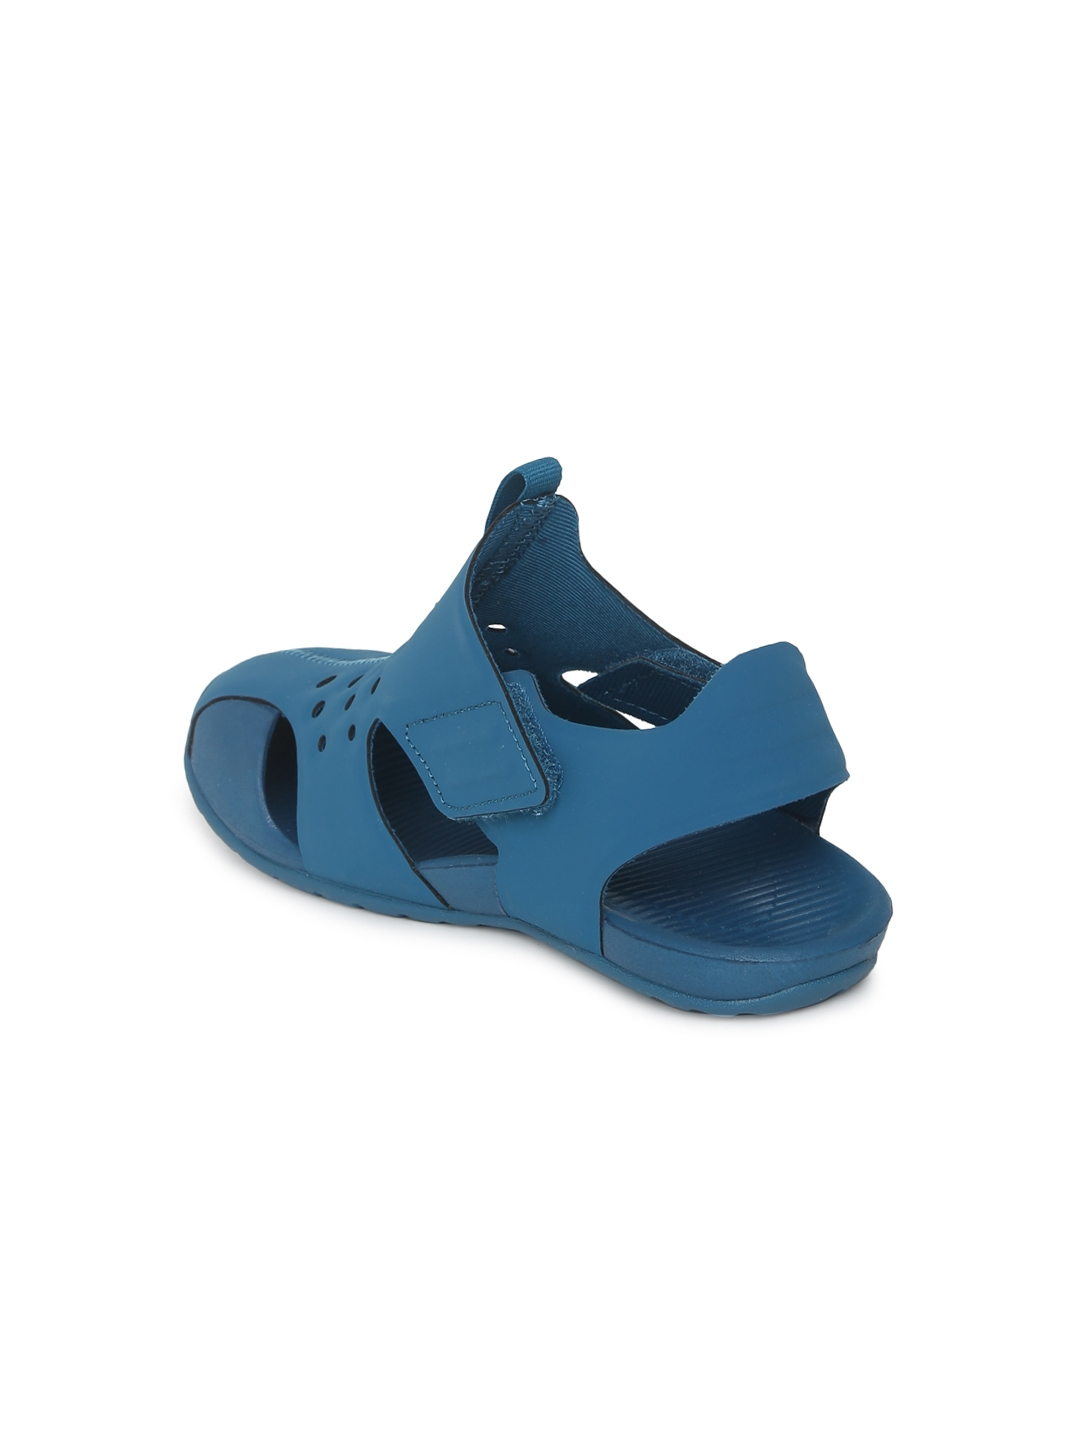 78dd01a68 Buy Nike Boys Blue Sunray Protect 2 Sports Sandals - Sports Sandals ...